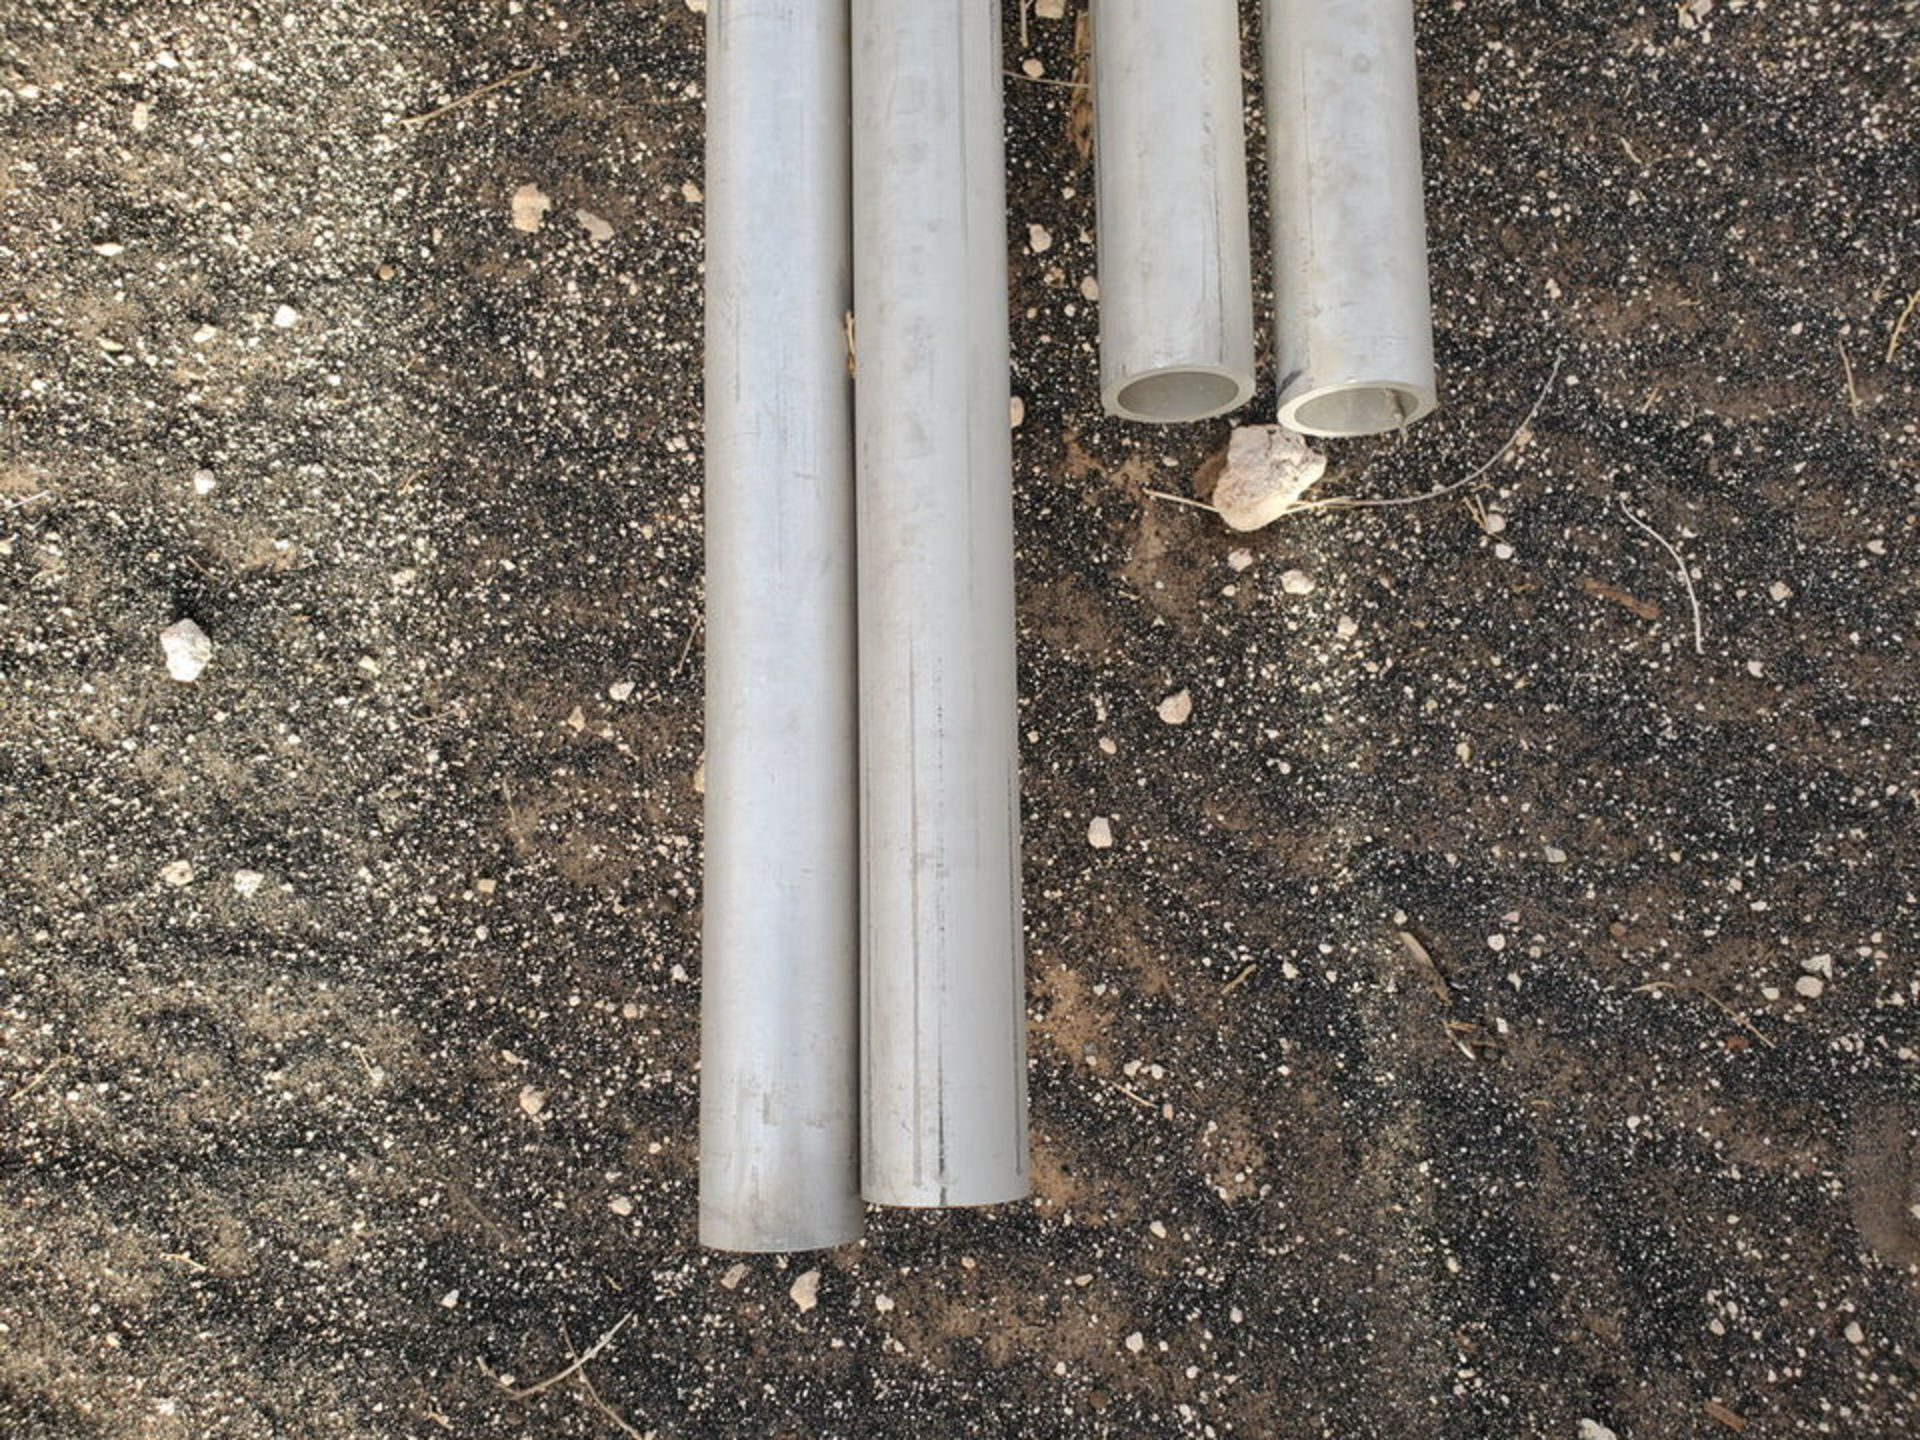 Assorted Matl. To Include But Limited To: S/S Channel, Pipe, Angle, Tubing, Rods, etc.(Rack - Image 11 of 19